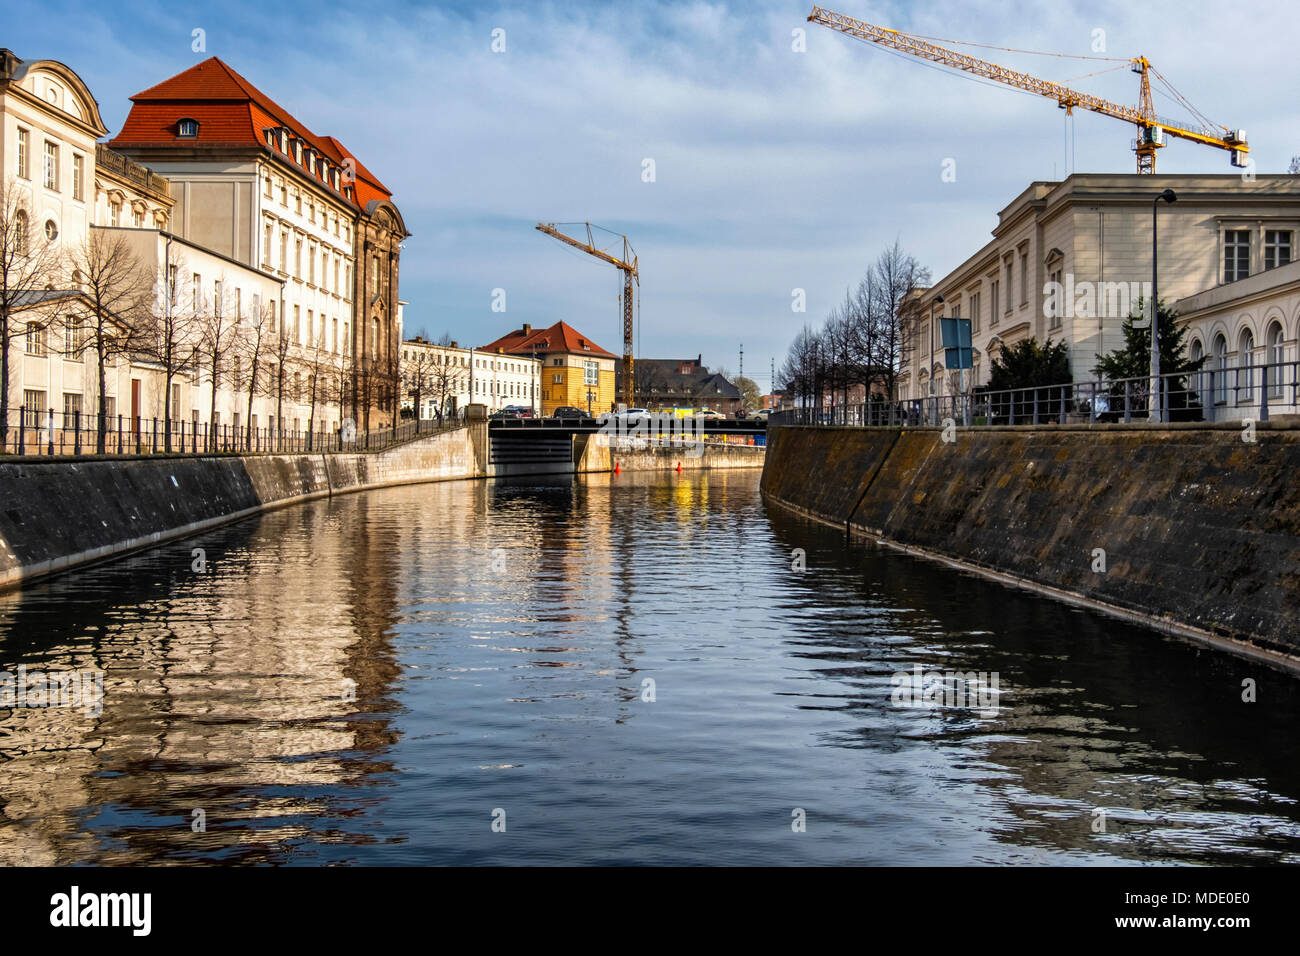 Berlin,Mitte,Spandau canal view with Federal Ministry of Economic Affairs & Energy & Hamburger Bahnhof Art Museum buildings - Stock Image